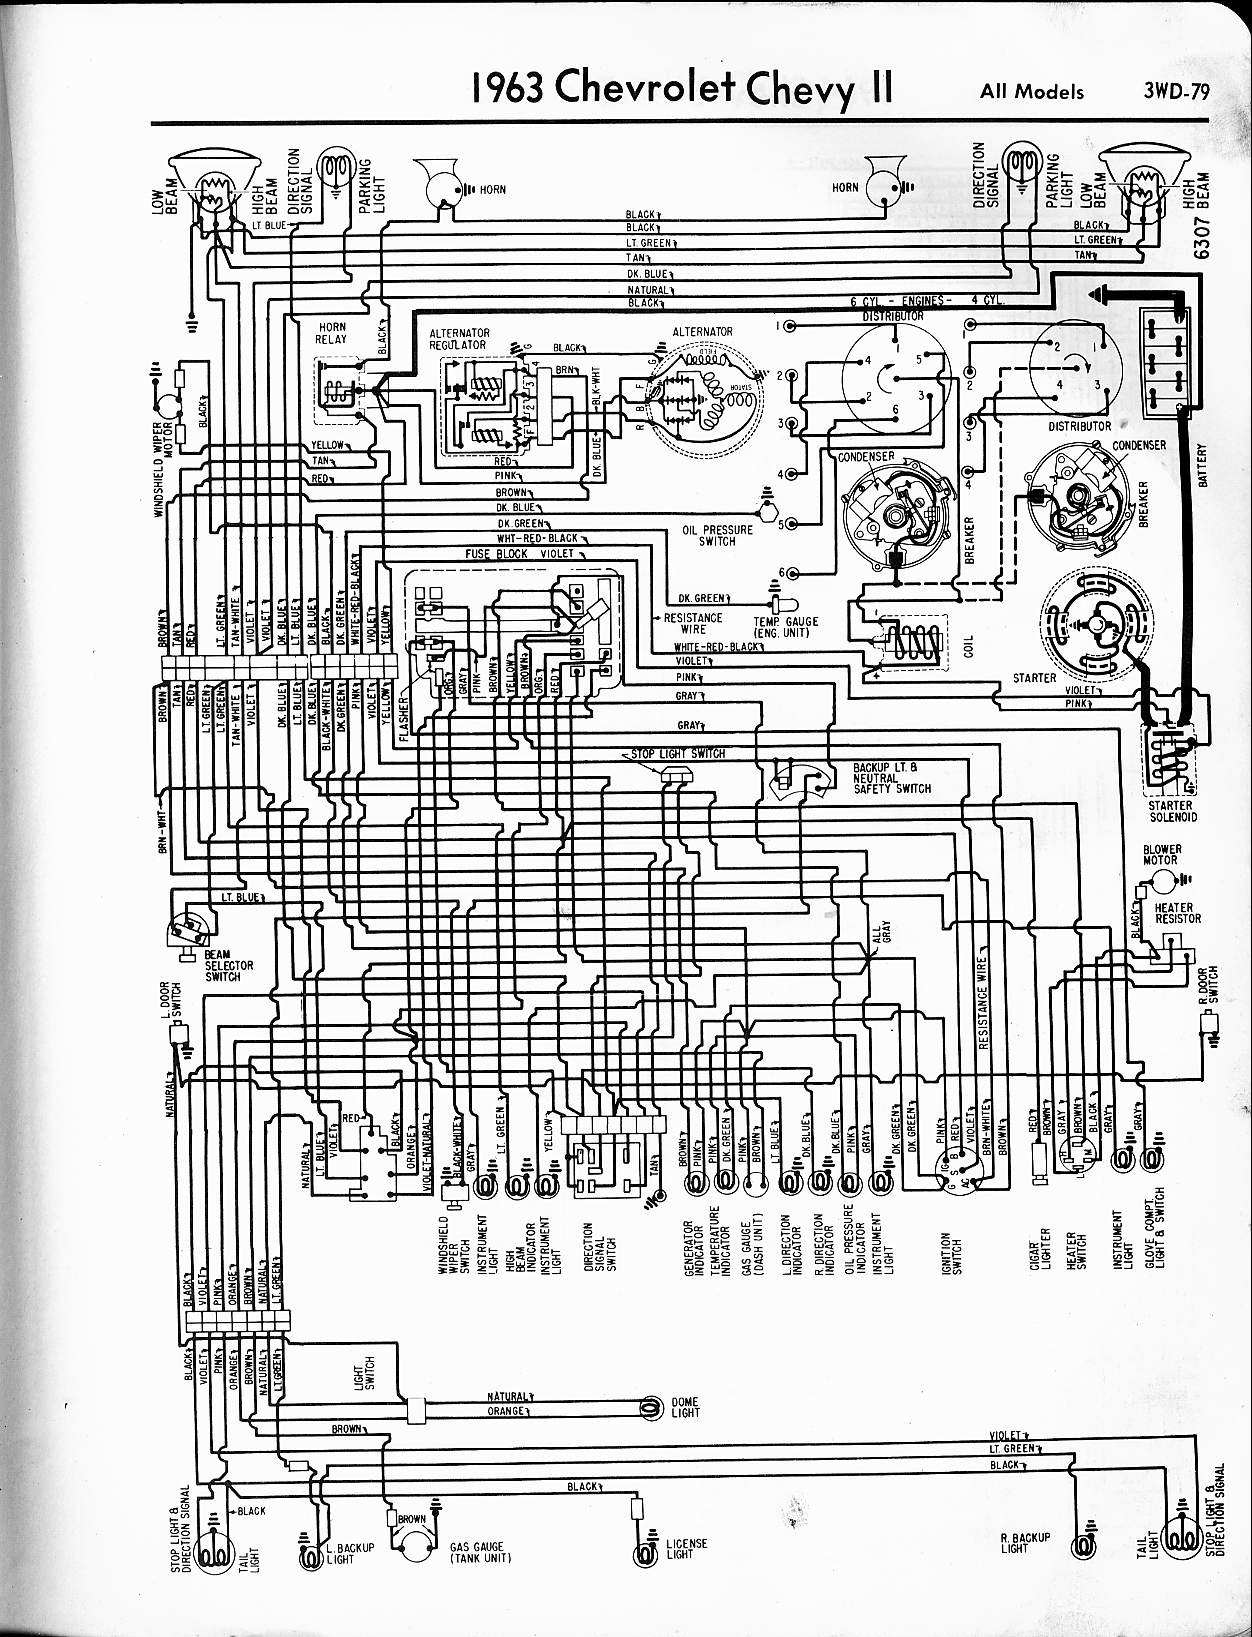 MWireChev63_3WD 079 57 65 chevy wiring diagrams 3 Wire Headlight Wiring Diagram at webbmarketing.co